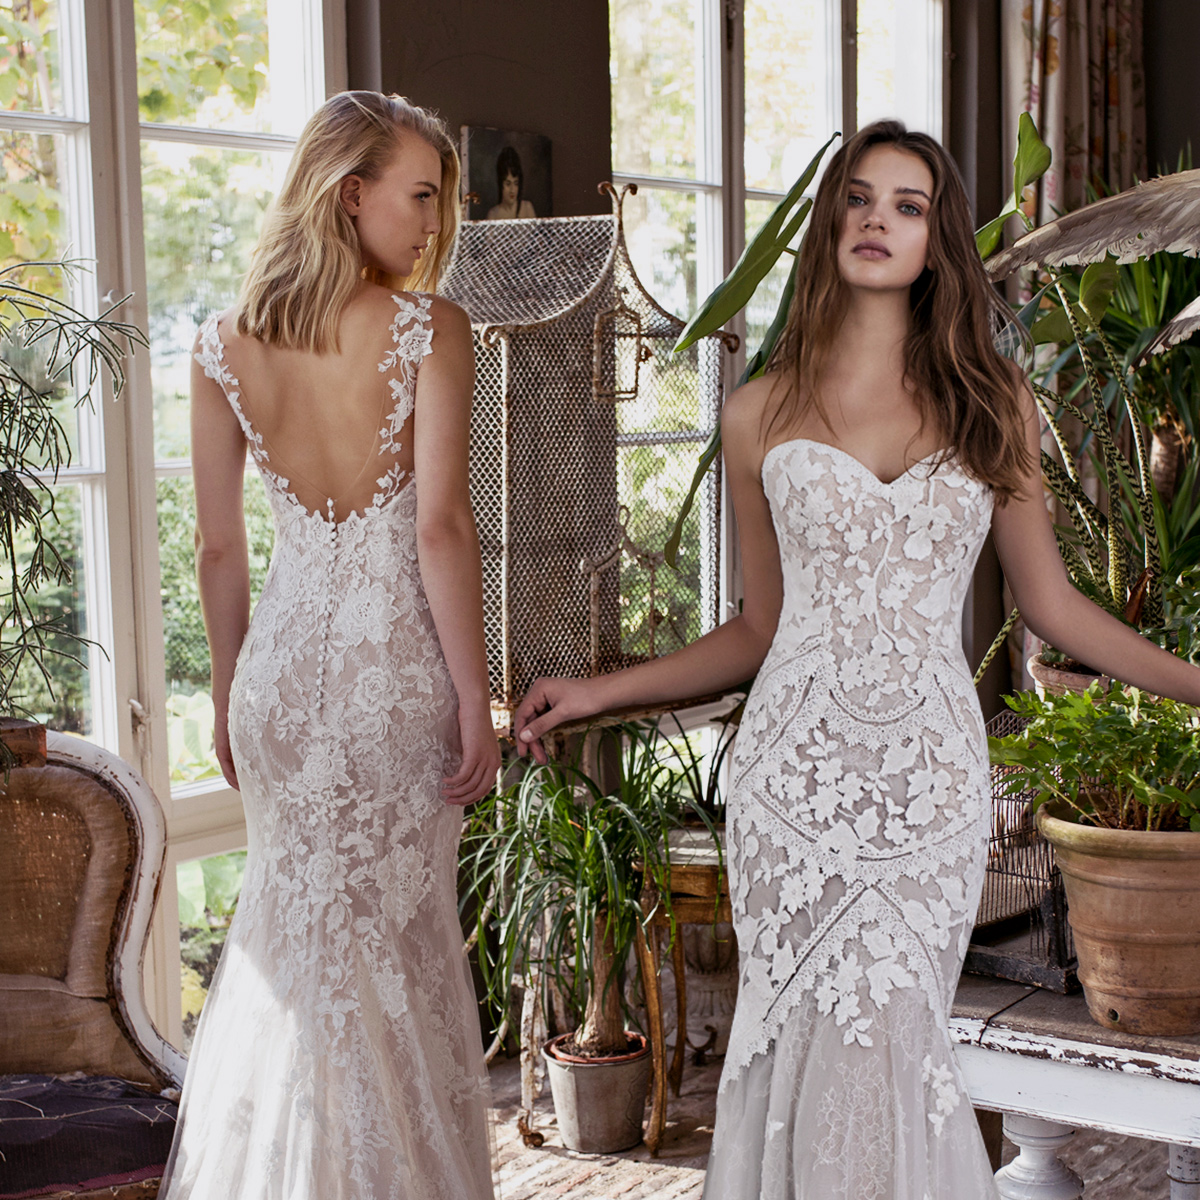 Nude Wedding Dress Trends